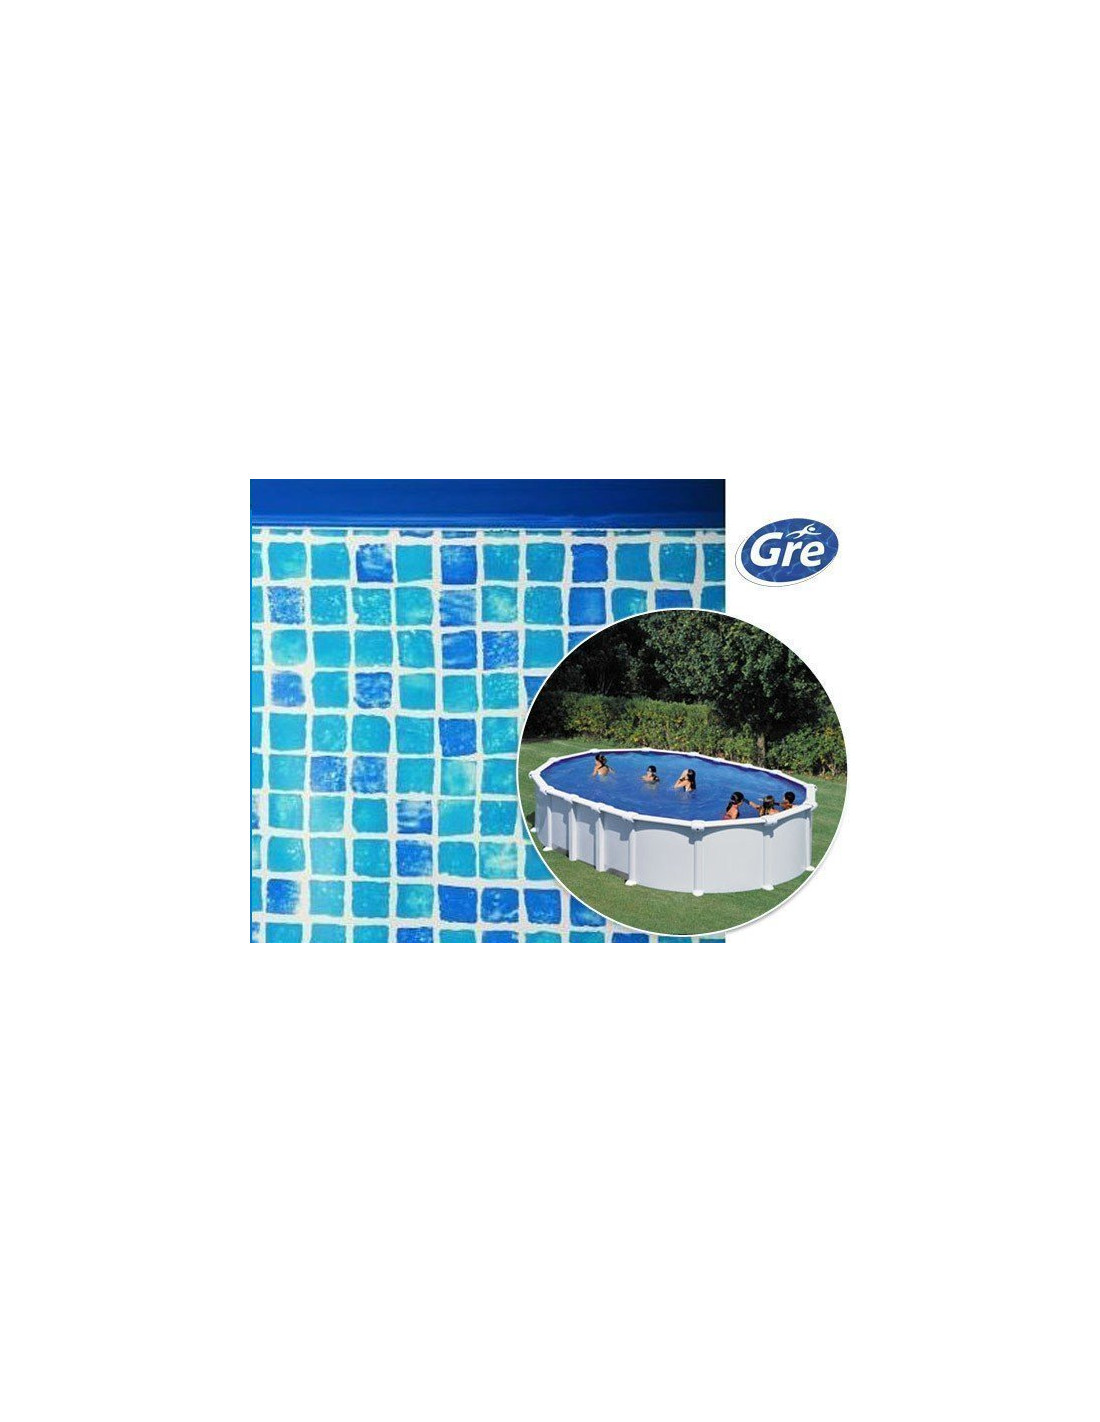 liner piscine hors sol ovale gre pool coloris mosa que